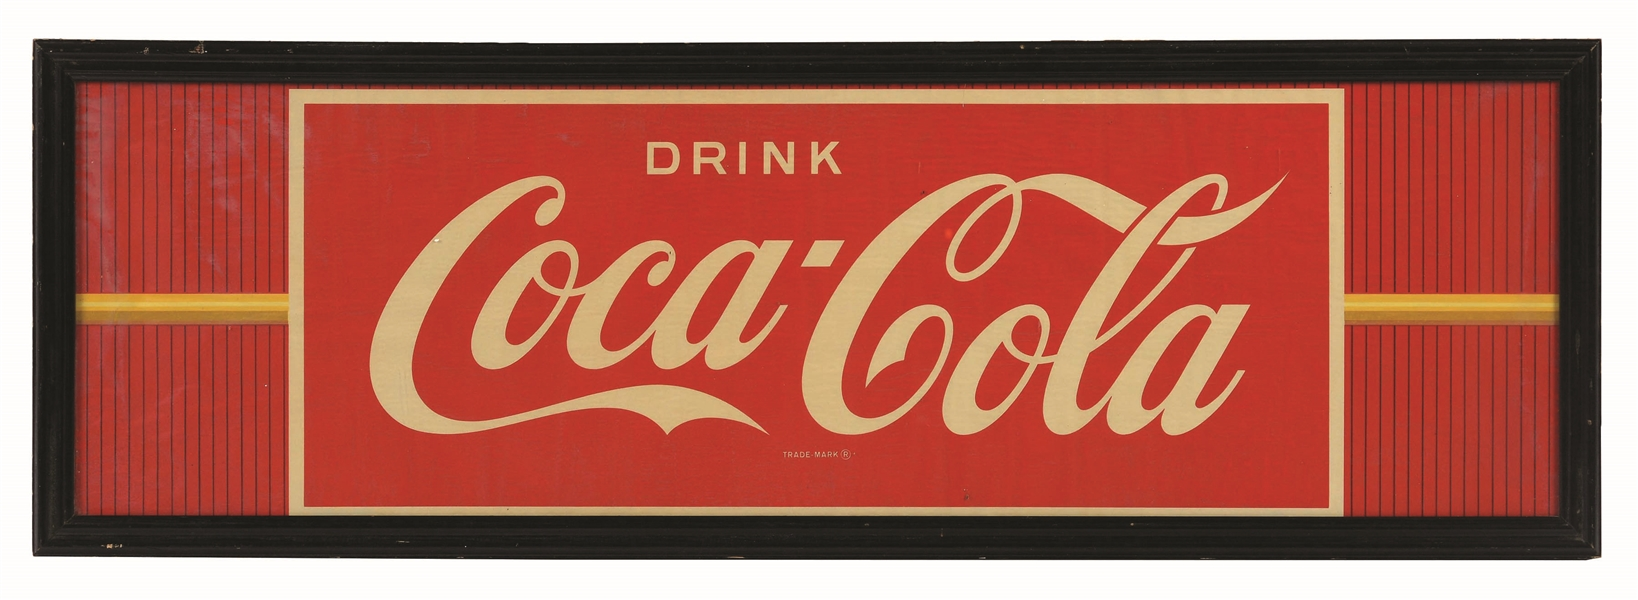 1940S COCA-COLA UNAPPLIED WINDOW DECAL.